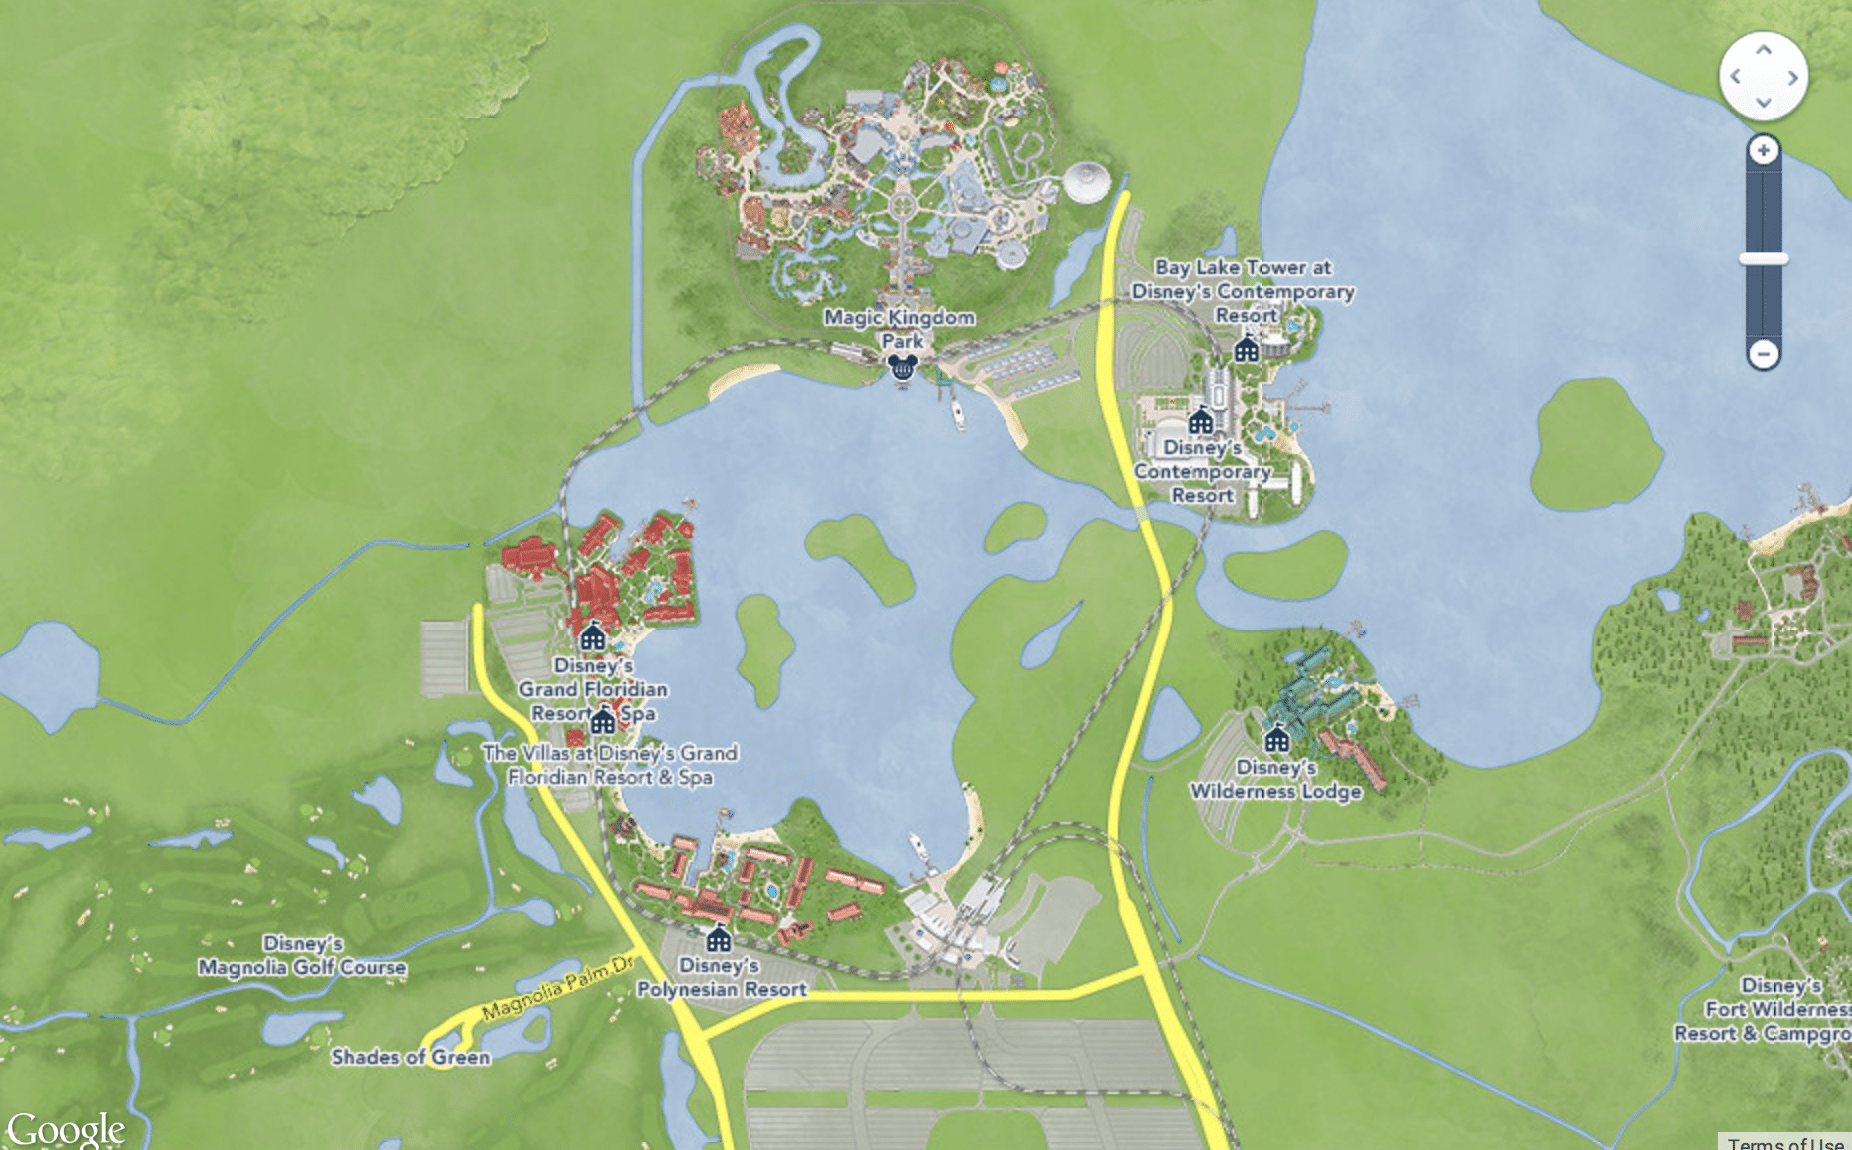 How to tour Disney World resorts even if youre not staying there